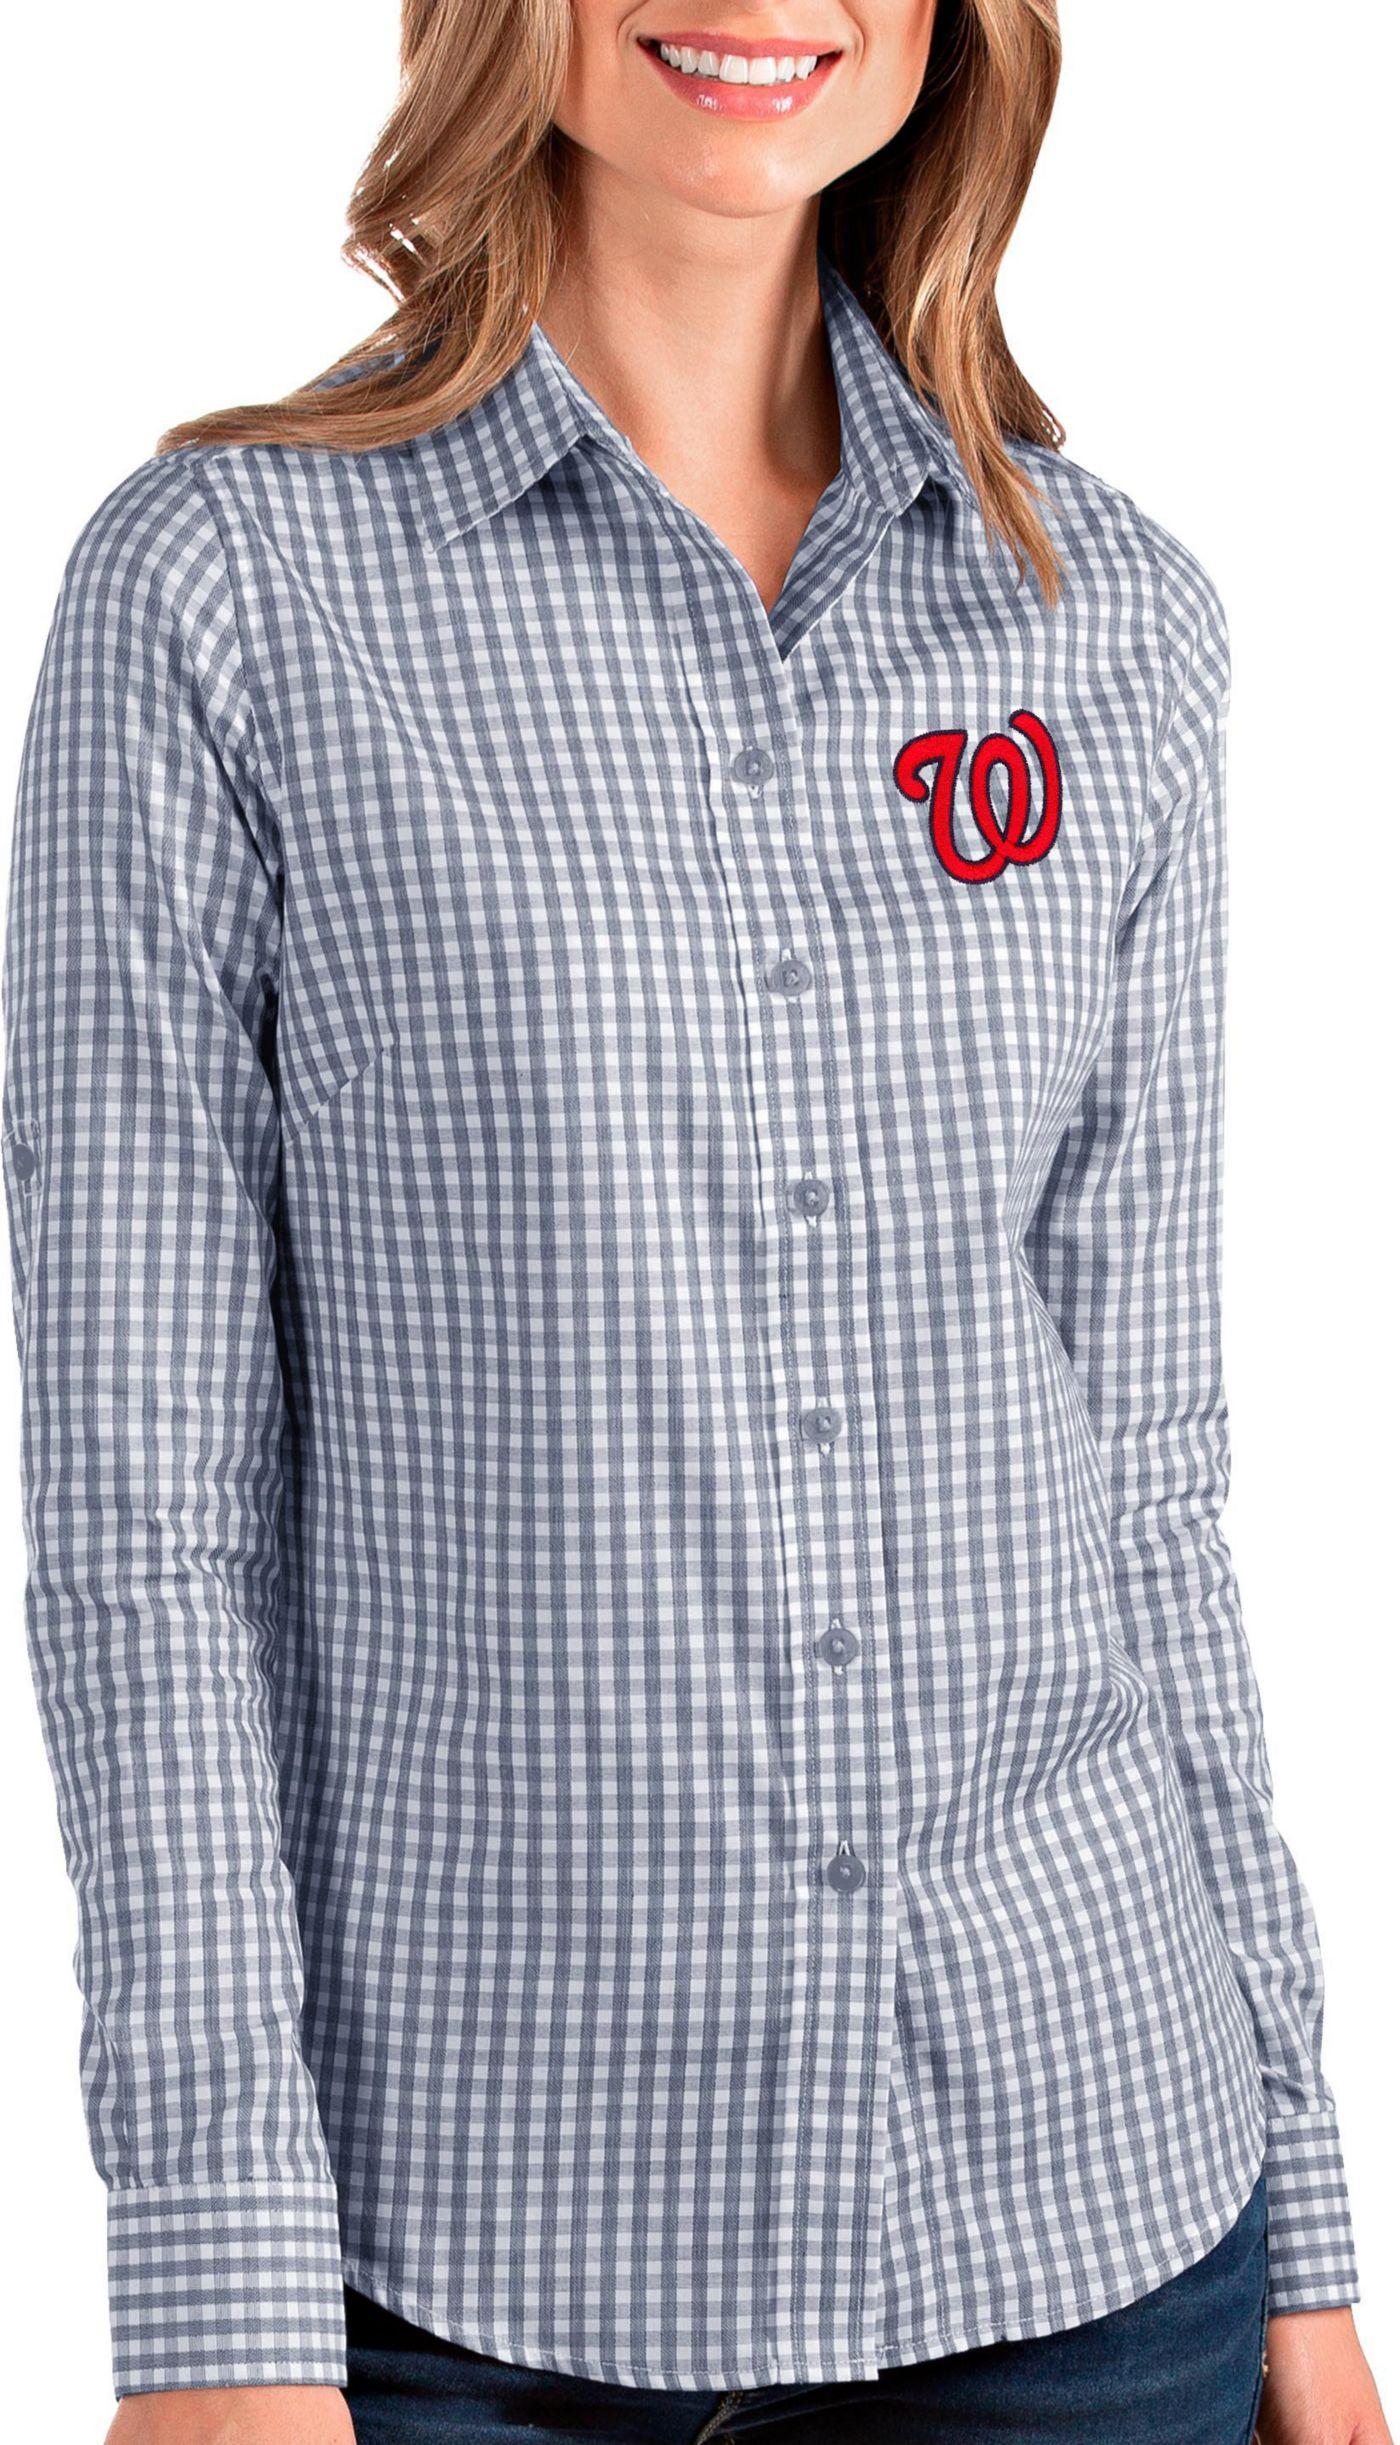 Antigua Women's Washington Nationals Structure Button-Up Navy Long Sleeve Shirt